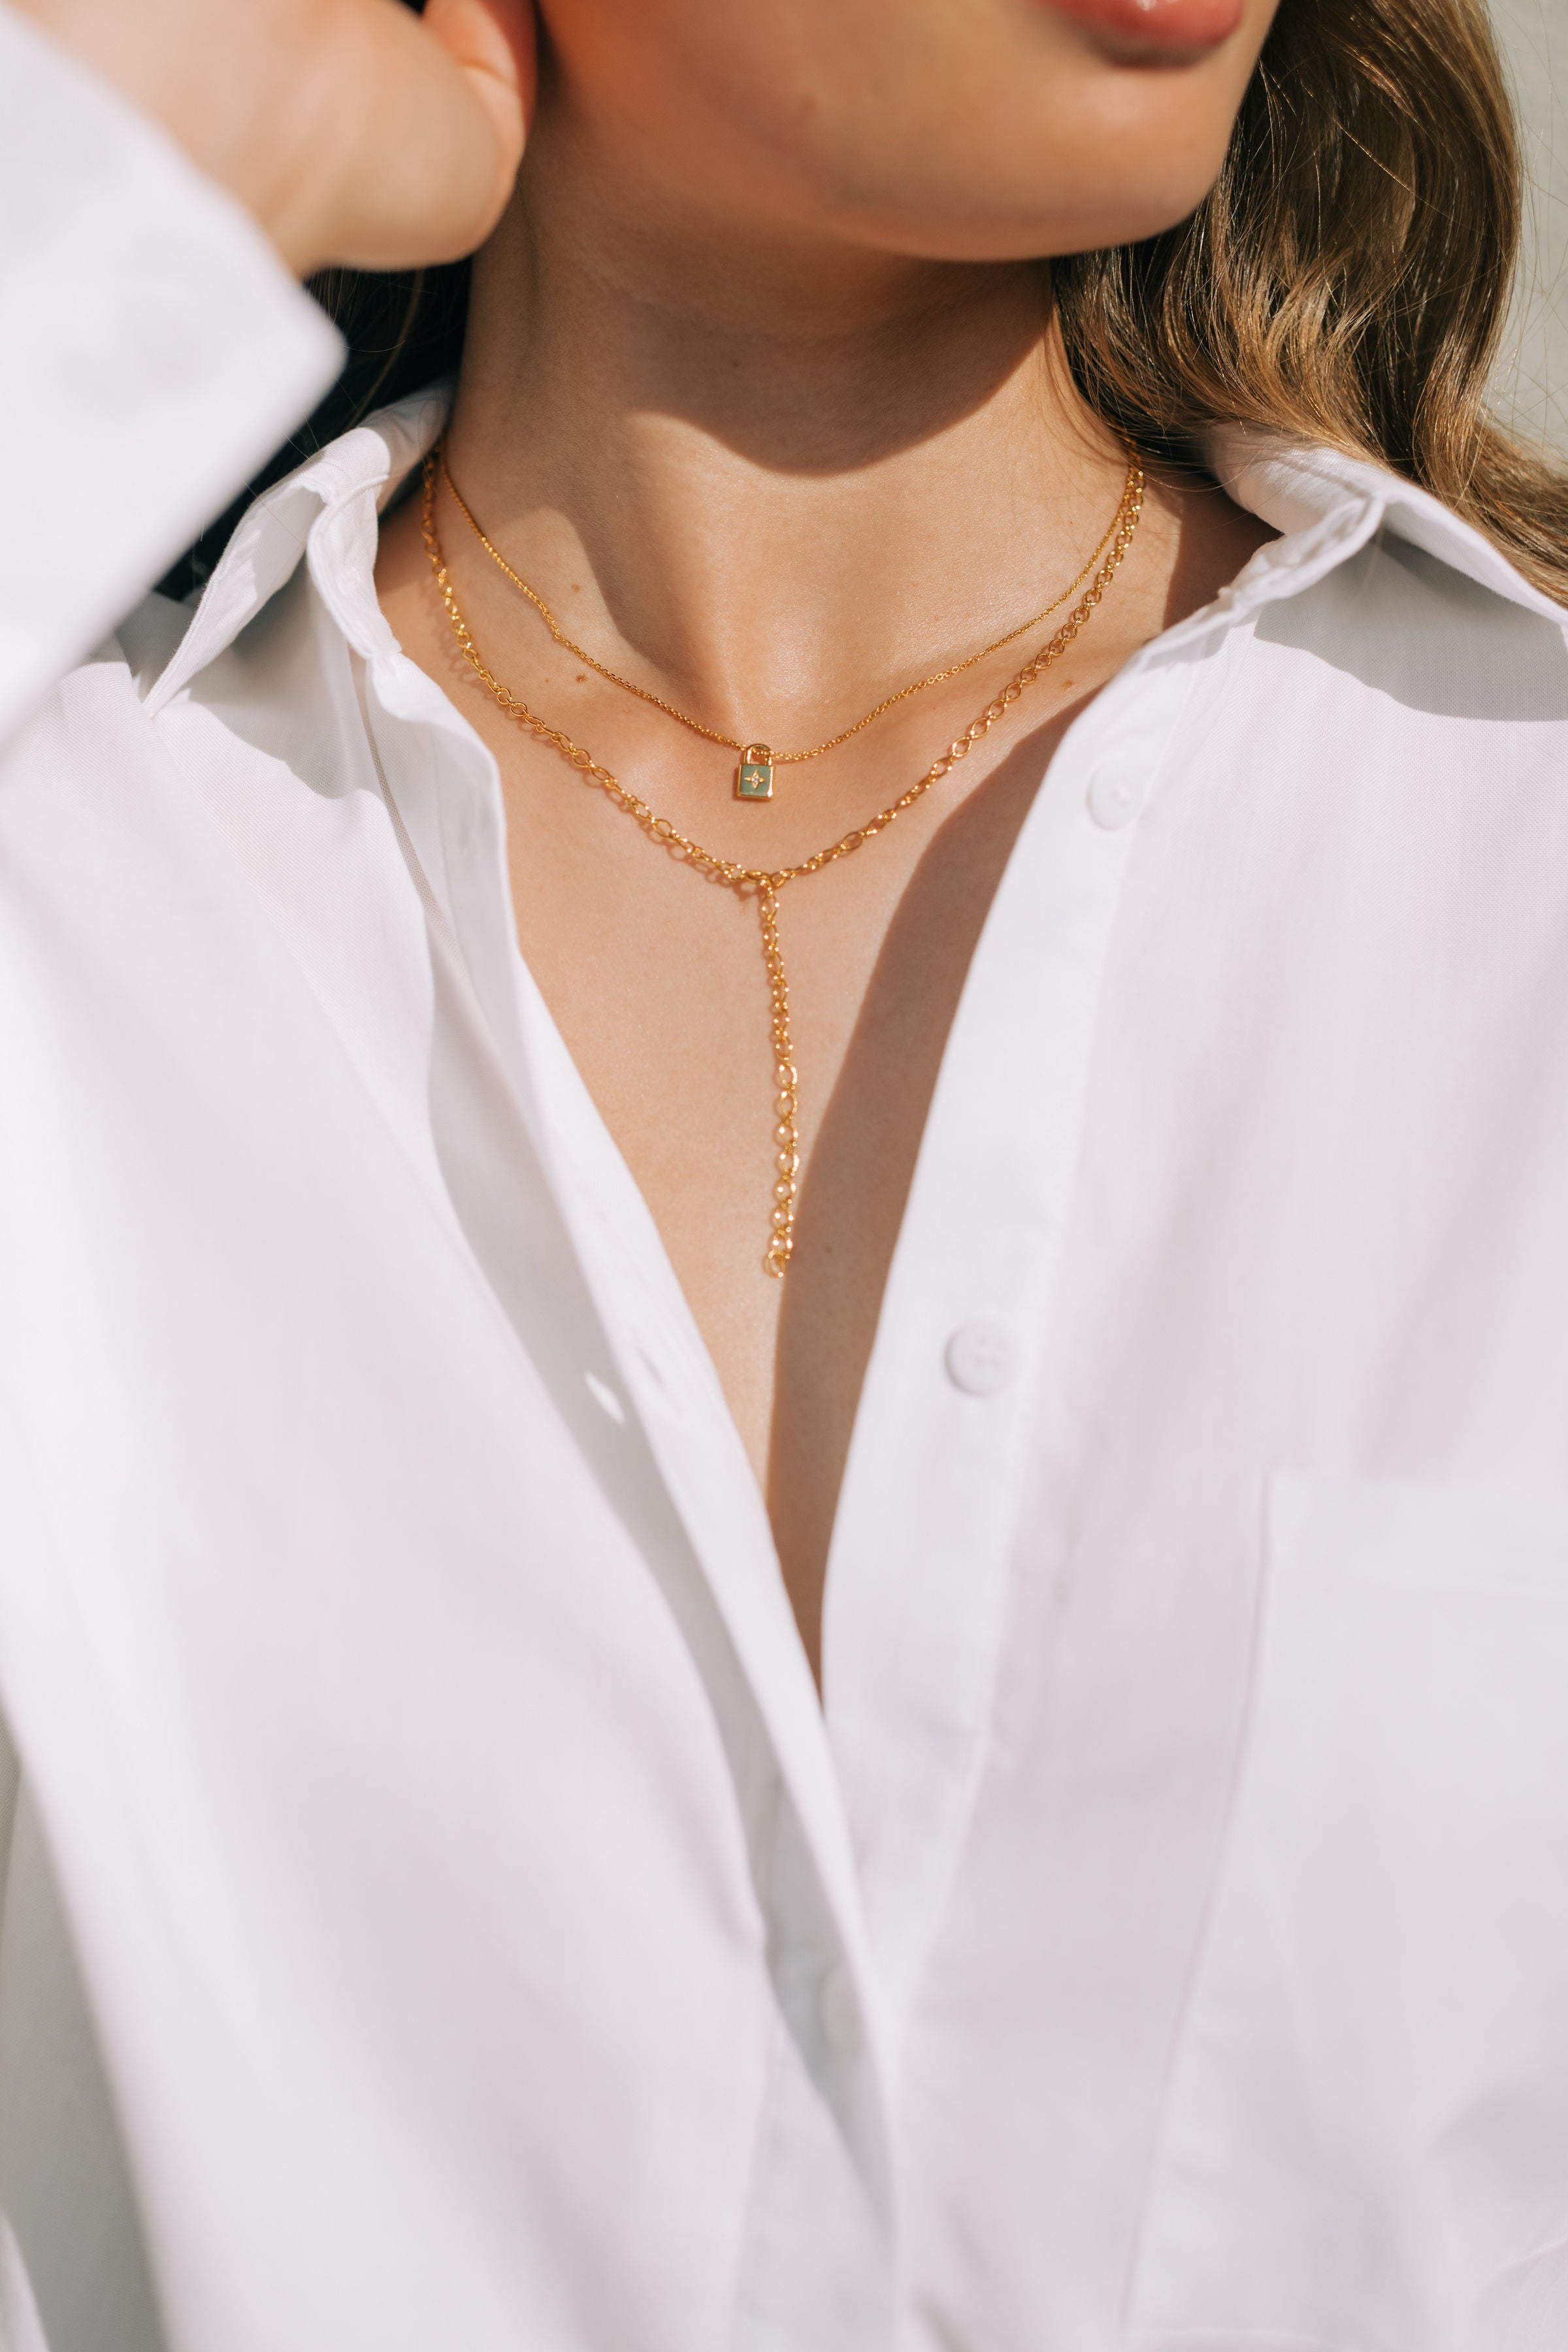 Y-Shape Adjustable Necklace - Yellow Gold